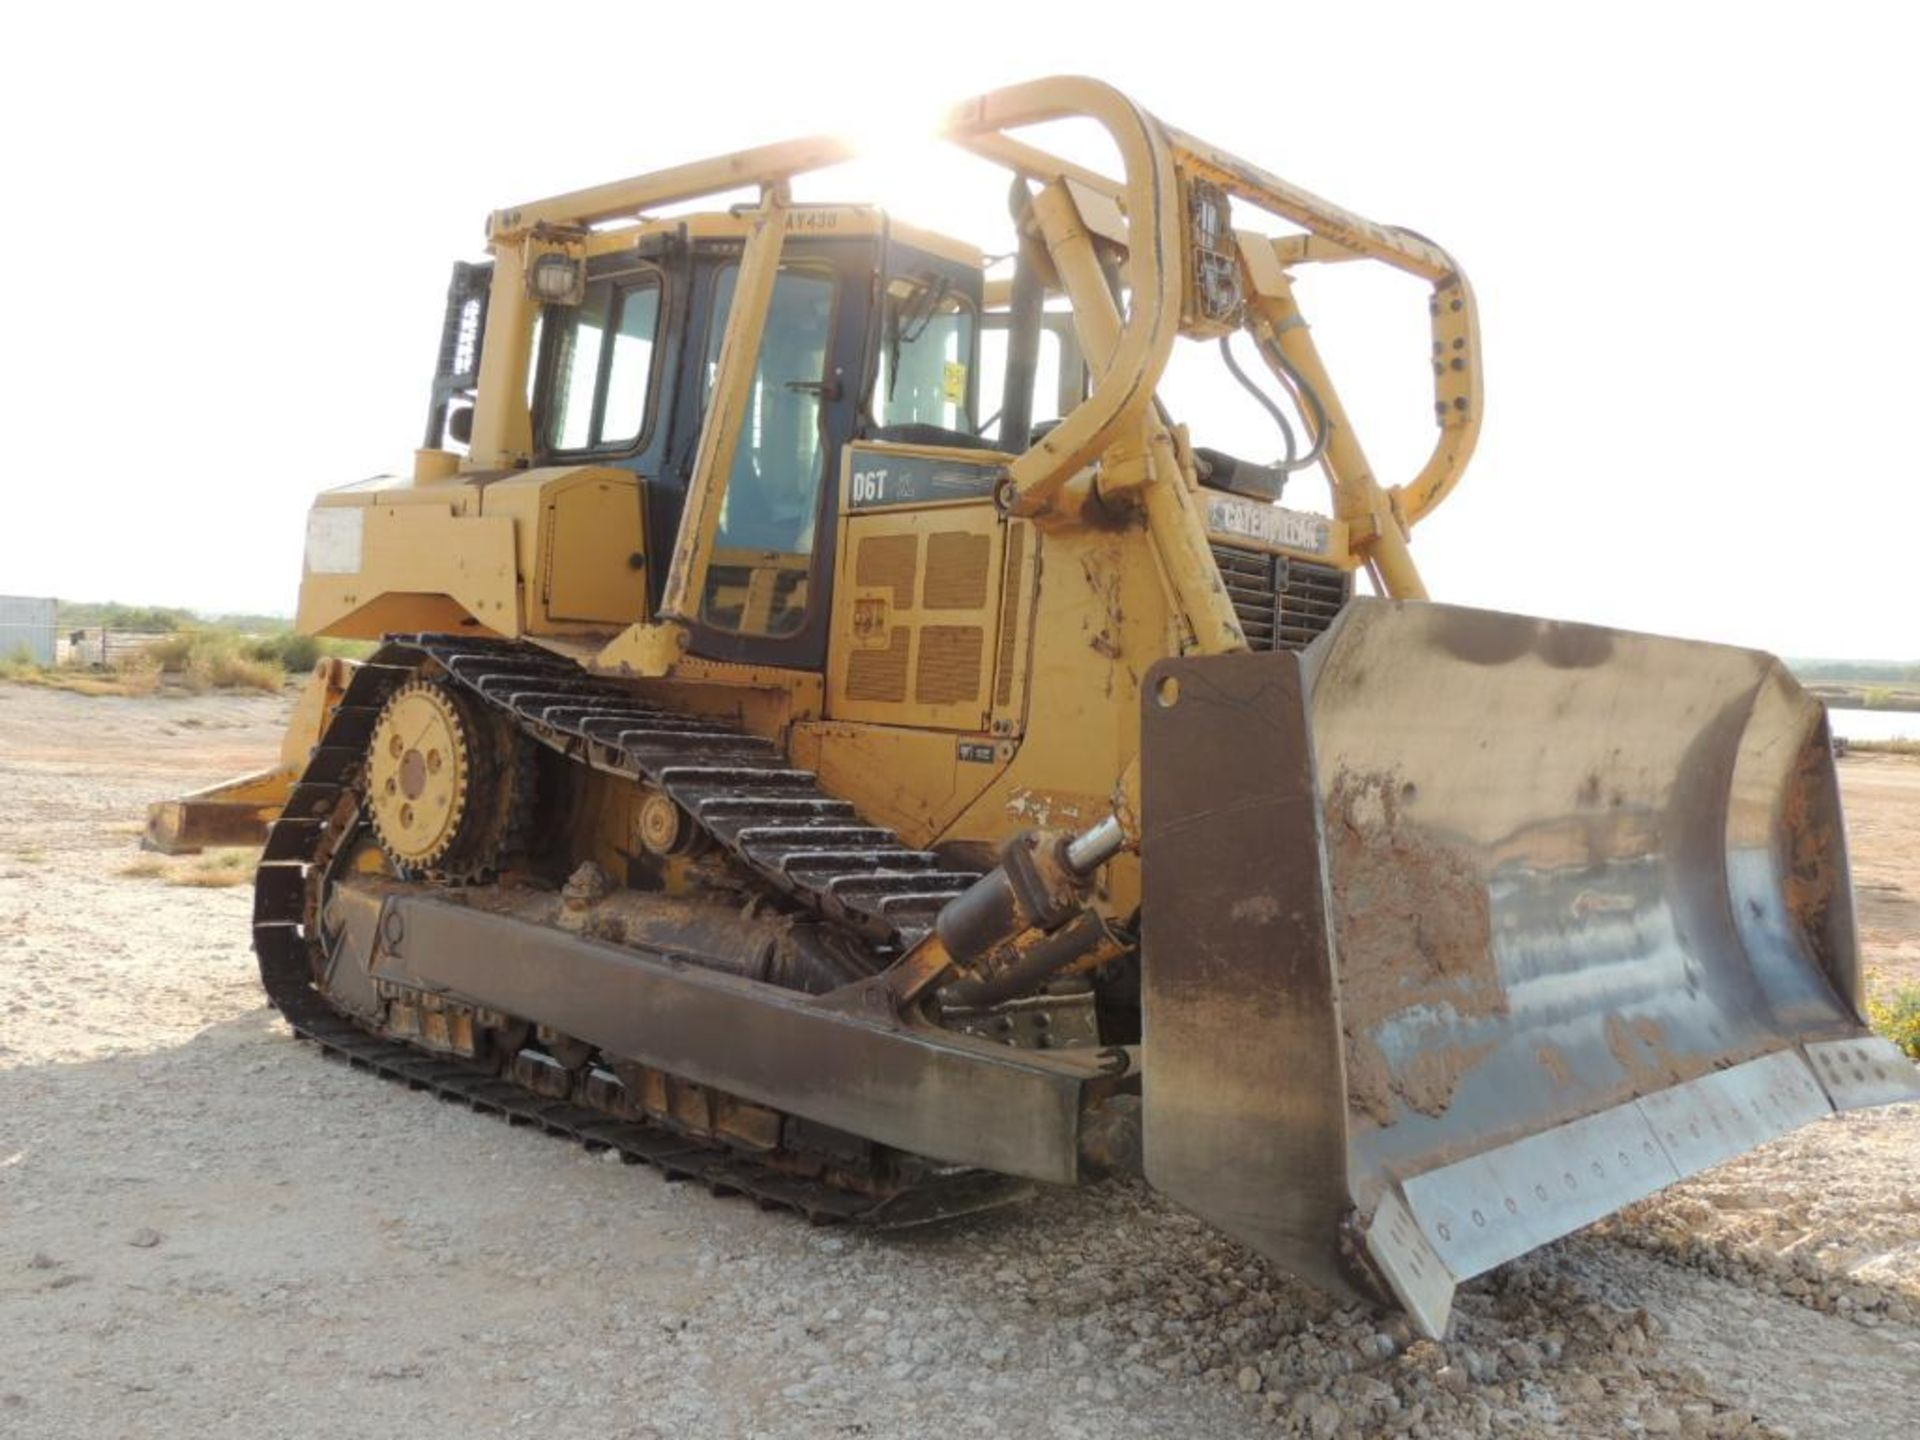 2007 Caterpillar D6T XL Crawler Tractor w/ Ripper, 90 % Remaining on Undercarrige, EROPS, Semi-U - Image 2 of 10